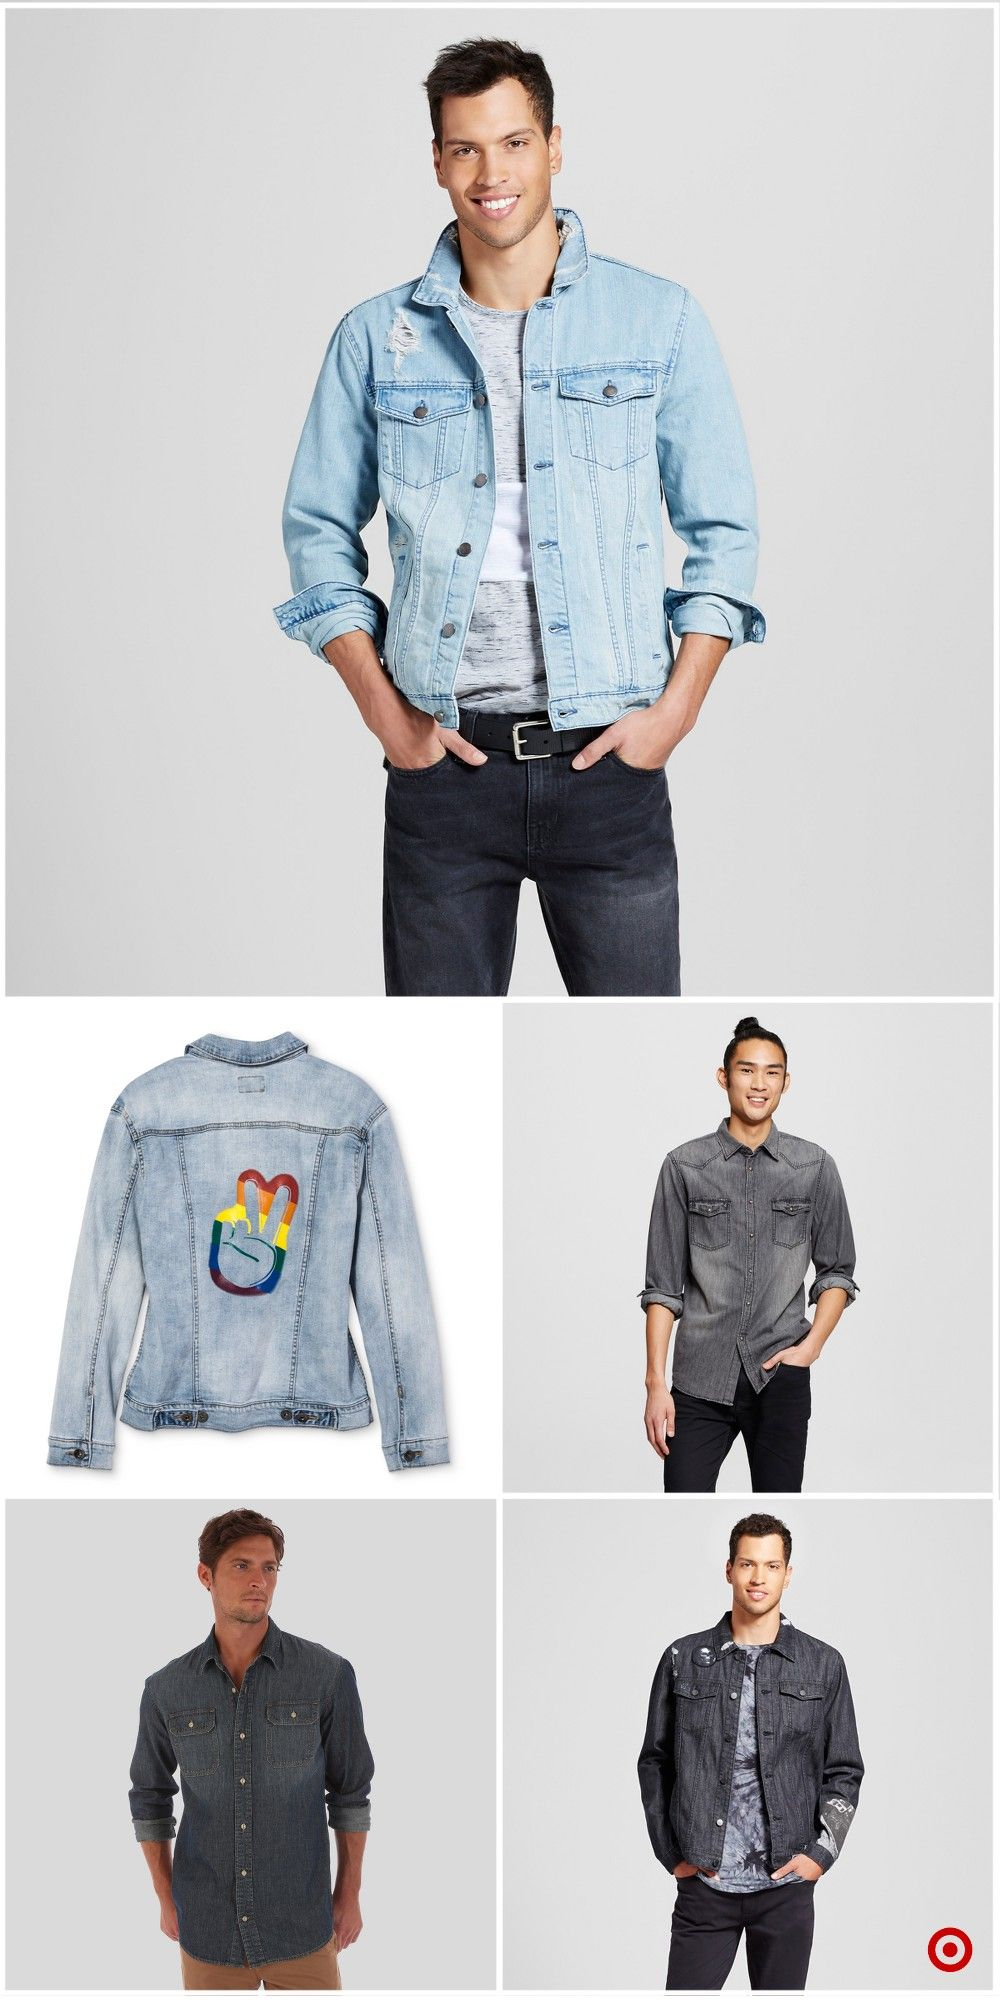 ed357e4a44 Shop Target for jeans you will love at great low prices. Free shipping on  orders of $35+ or free same-day pick-up in store.